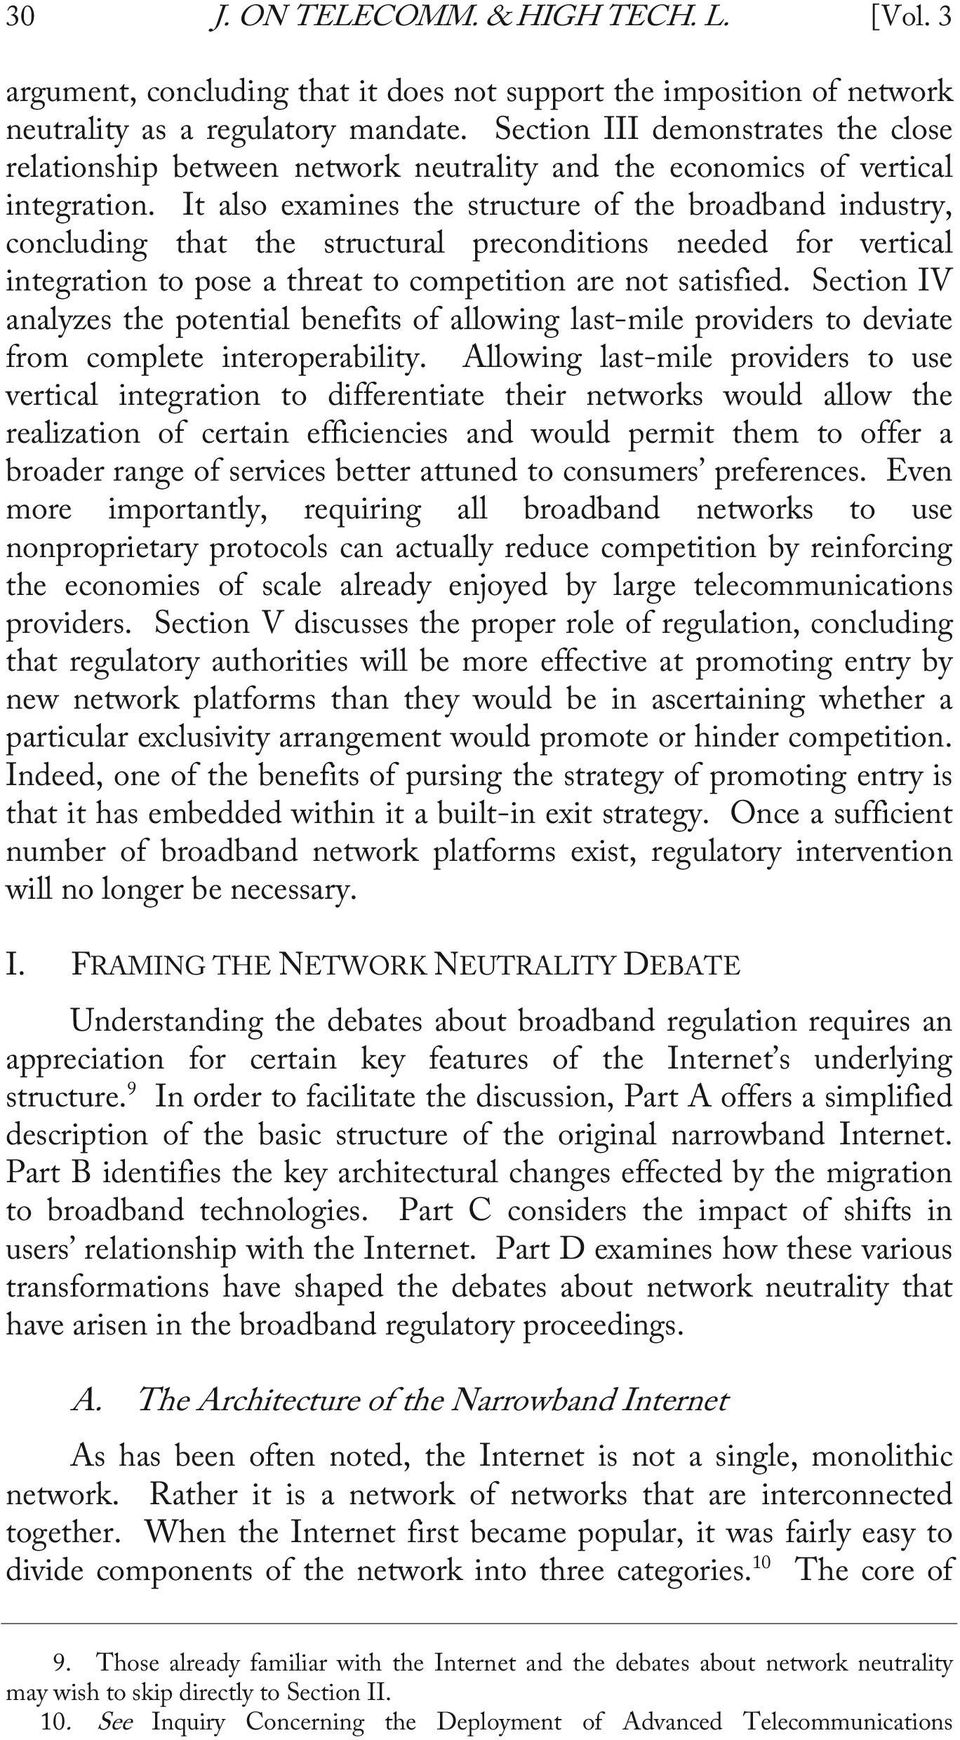 It also examines the structure of the broadband industry, concluding that the structural preconditions needed for vertical integration to pose a threat to competition are not satisfied.